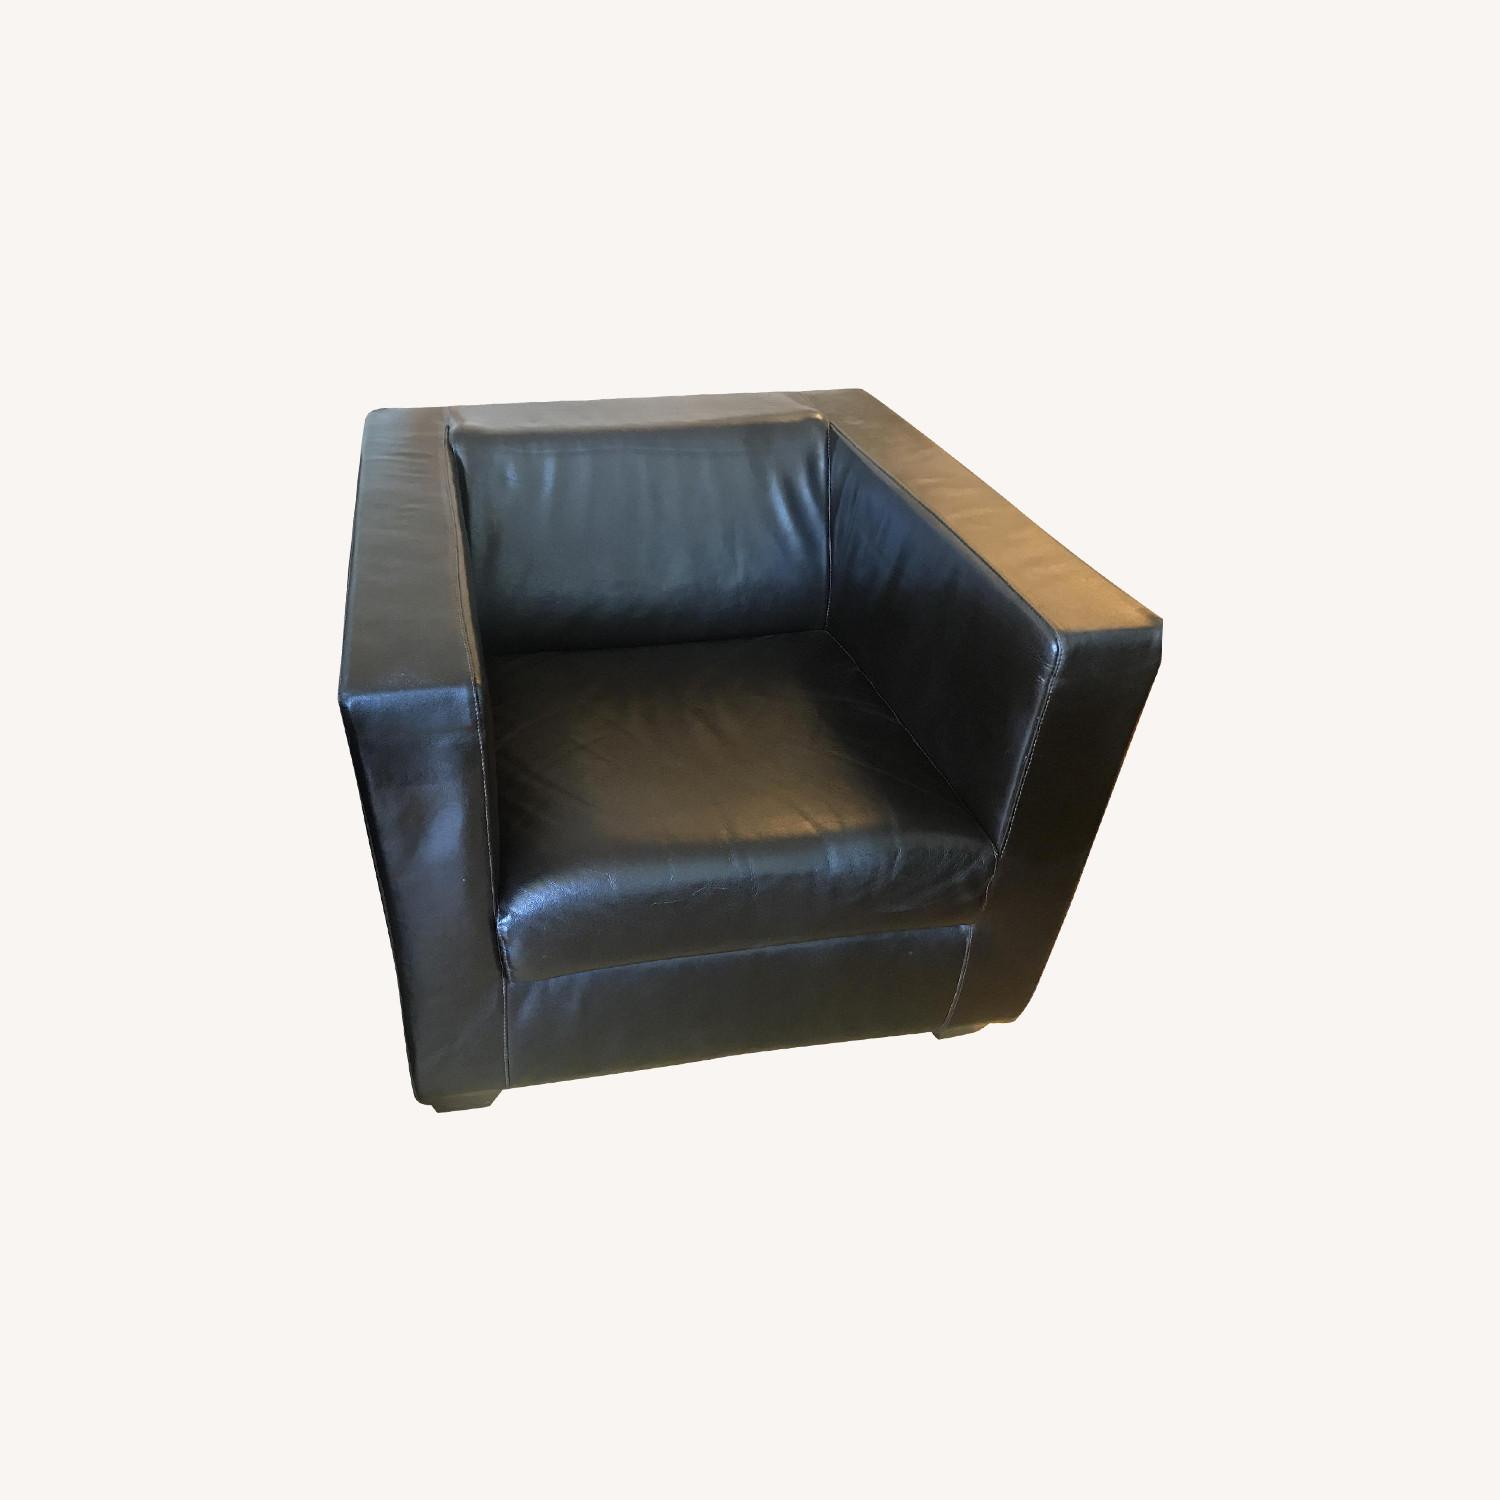 Exquisite Brown Leather Chairs - image-0